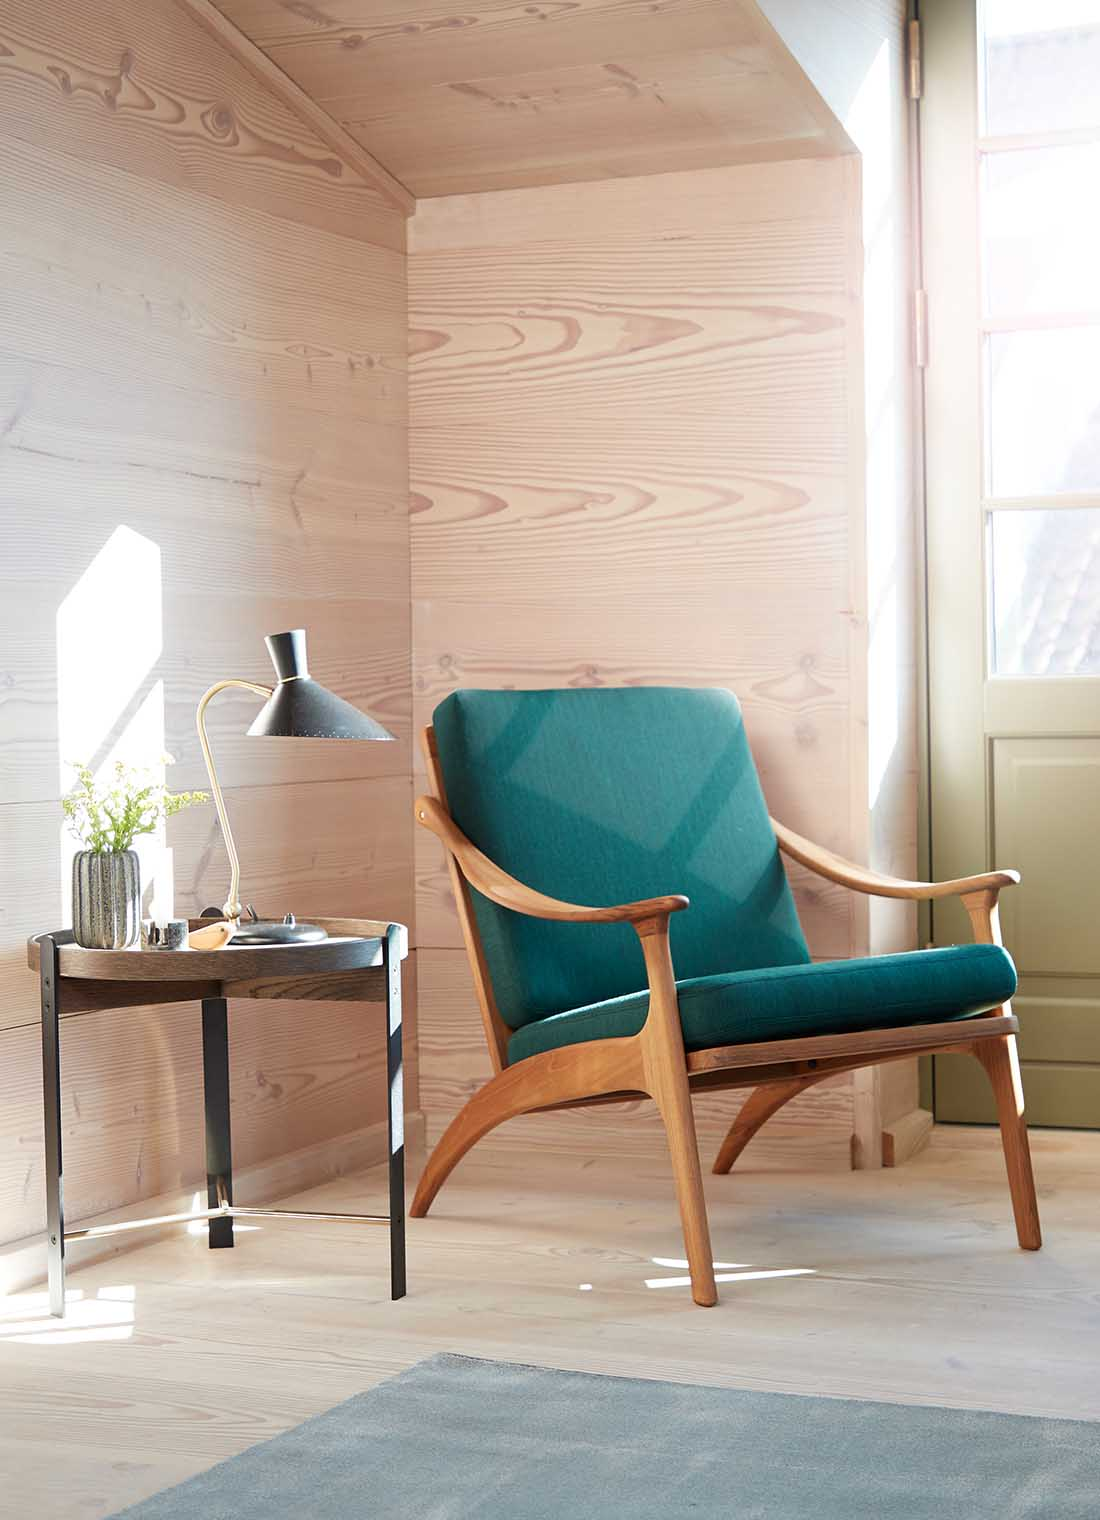 Lean Back lounge chair in teak wood and forest green in a light, modern room with Compose side table.